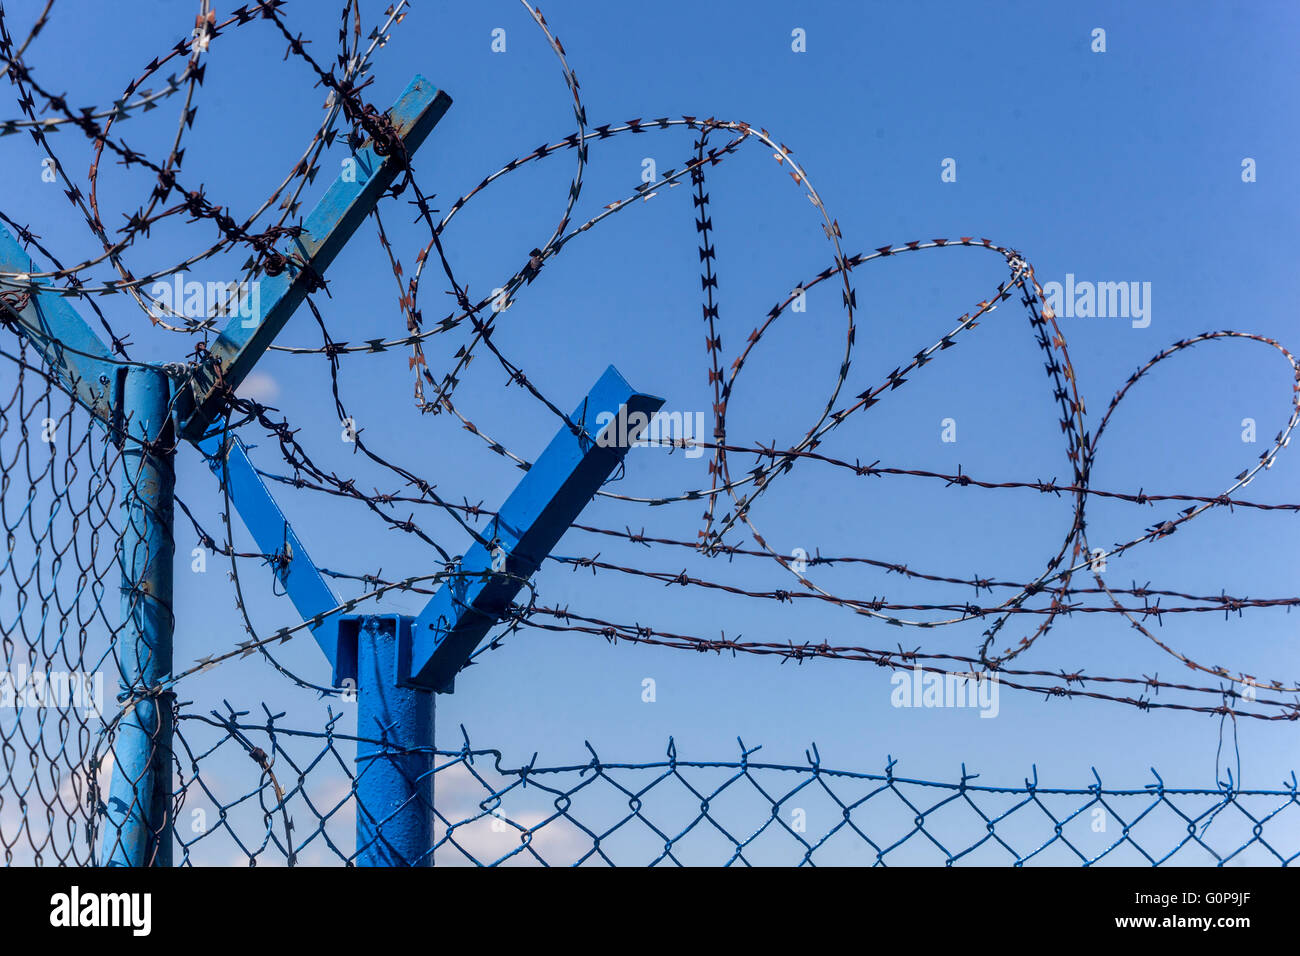 Razor wire and fence - Stock Image